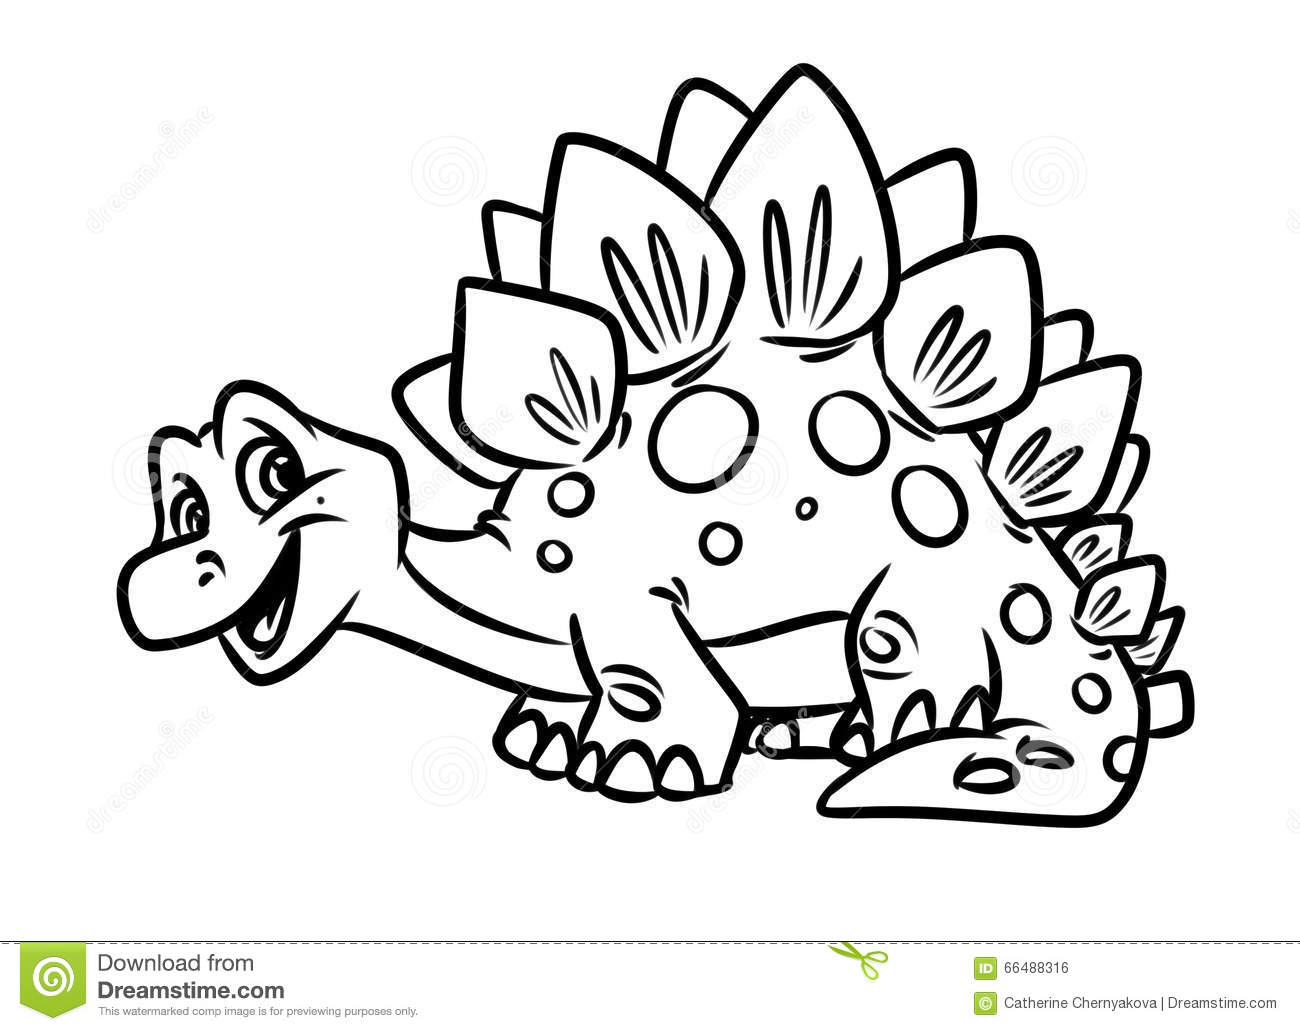 Funny Dinosaur Stegoceras Cartoon With Volcano Landscape Background Royalty Free Stock